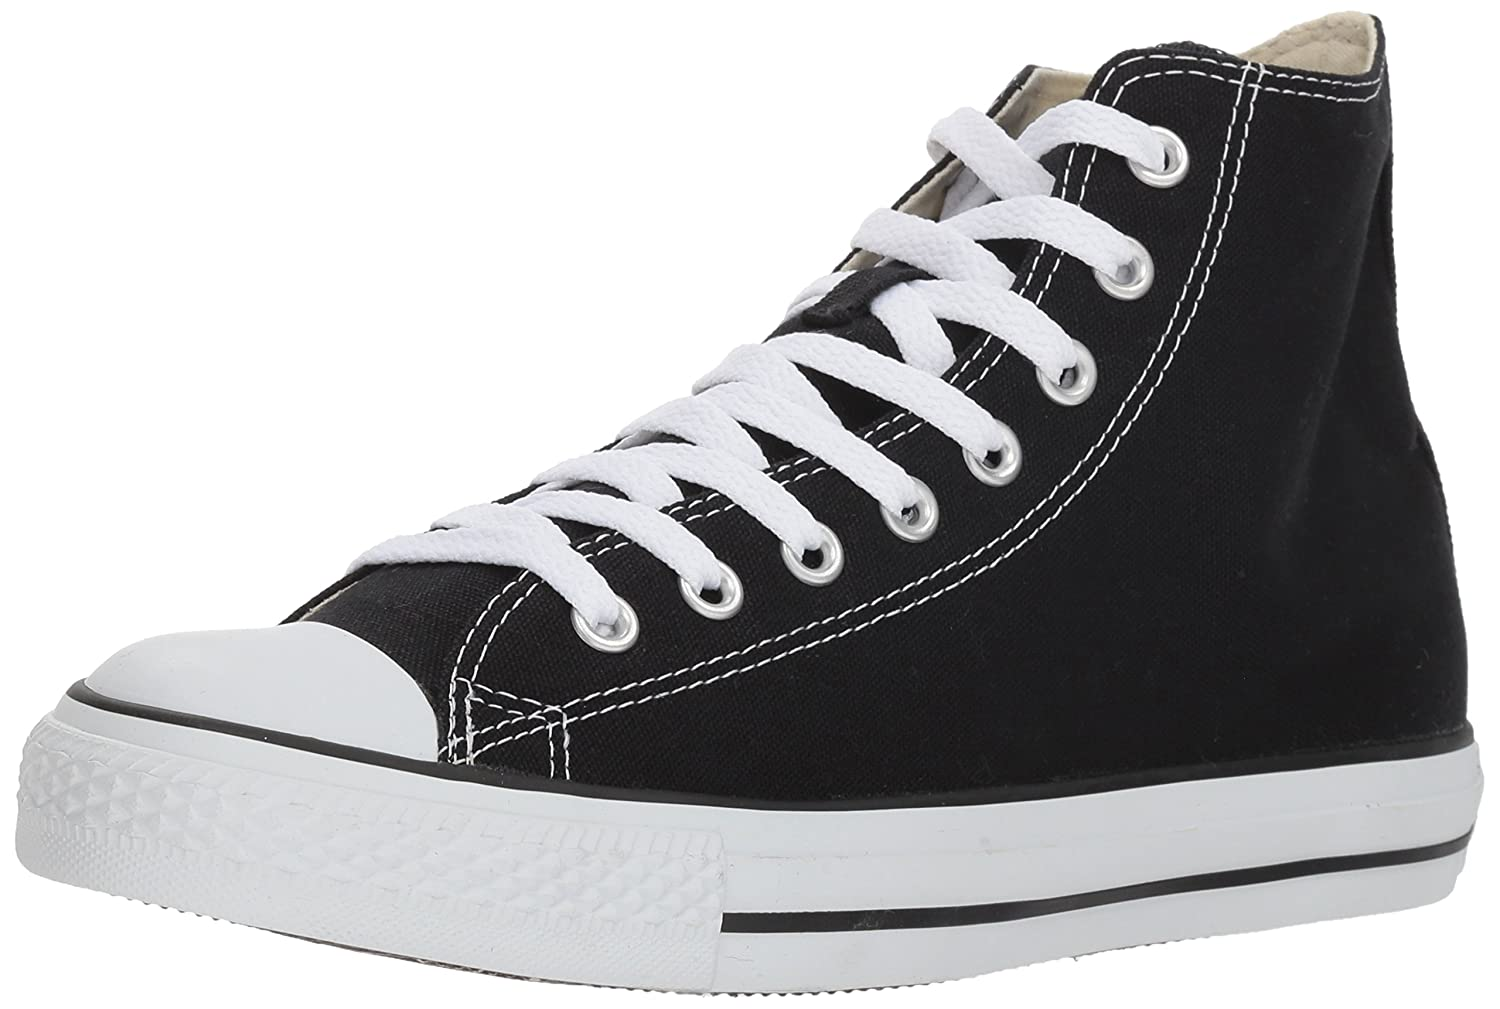 Converse Unisex Chuck Taylor All-Star High-Top Casual Sneakers in Classic Style and Color and Durable Canvas Uppers B076CV6WV5 13 D(M) US / 15 B(M) US / 48 EUR|Black